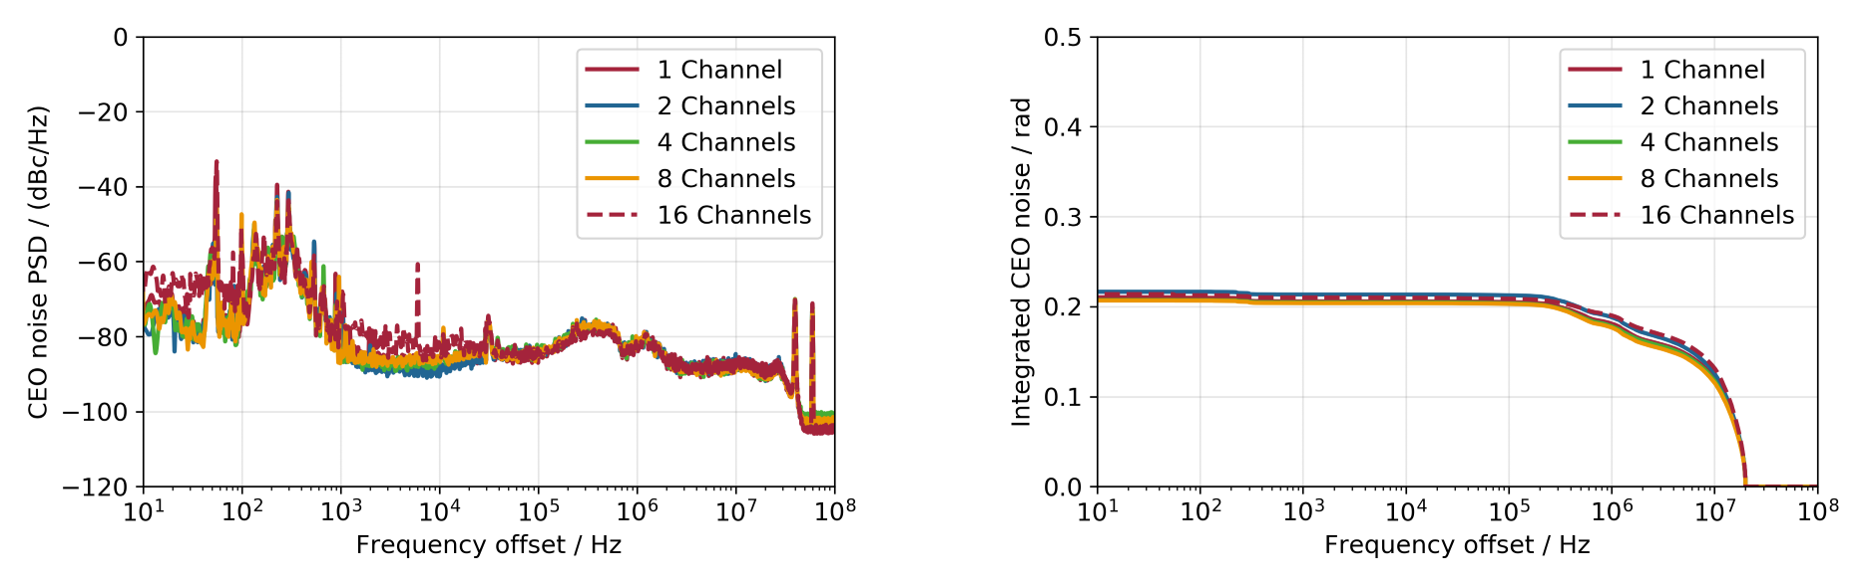 Typical power spectral density and integrated CEP-noise of AFS coherent combining systems